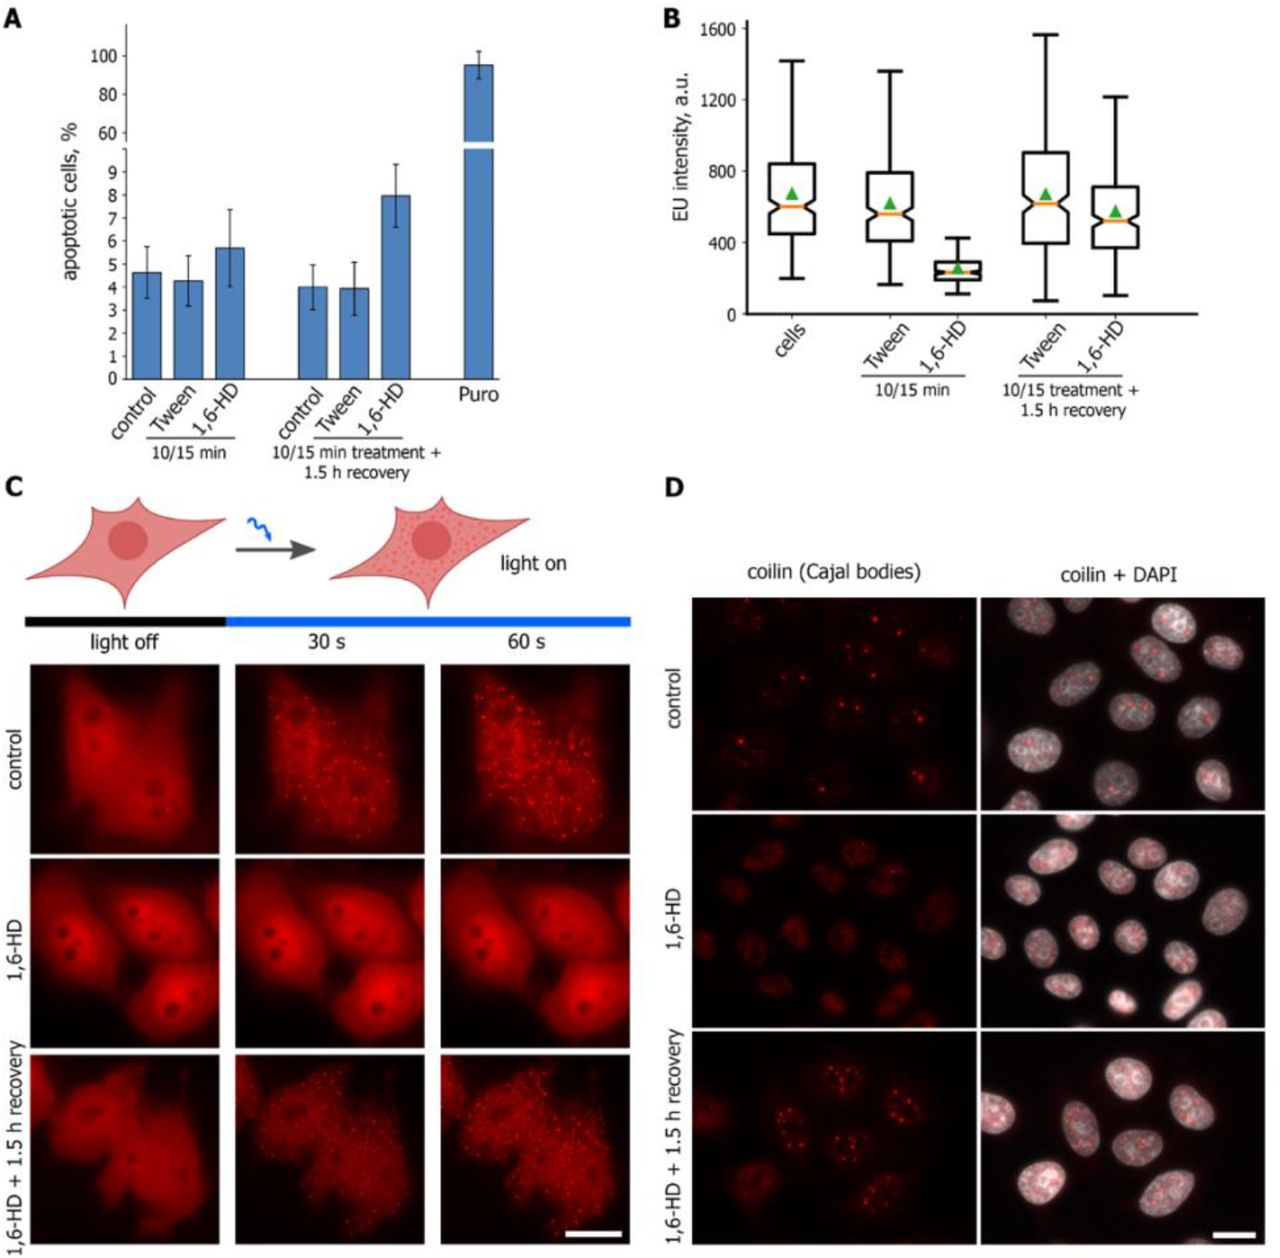 """1,6-HD compromises LLPS in living human cells. ( A ) HeLa cells were untreated or treated with Tween 20 (1%, 10 min; """"Tween""""), Tween 20 followed with 1,6-HD (5%, 15 min; """"1,6-HD"""") before being analyzed using CellEvent Caspase 3/7 Detection Reagent. The cells treated as described and then incubated in fresh culture medium for 1.5 h were analysed as well. Percent of caspase 3/7-positive (apoptotic) cells is shown. ( B ) HeLa cells treated as described in ( A ) were pulsed with <t>5-ethyniluridine</t> (EU, 200 μM, 15 min). Box plots show the EU fluorescence intensities. Horizontal lines represent the medians. ( C ) HeLa cells transfected with pHR-FUSN-mCh-Cry2WT were transiently permeabilized and then either mock-treated (control), treated with 1,6-HD (5%, 15 min), or treated with 1,6-HD and allowed to recover for 1.5 h. OptoDroplet formation was monitored as described in ( Shin et al. 2017 ). ( D ) Transiently permeabilized HeLa cells were untreated (control), treated with 1,6-HD (5%, 15 min), or treated with 1,6-HD and allowed to recover for 1.5 h before being stained for coilin (red)."""